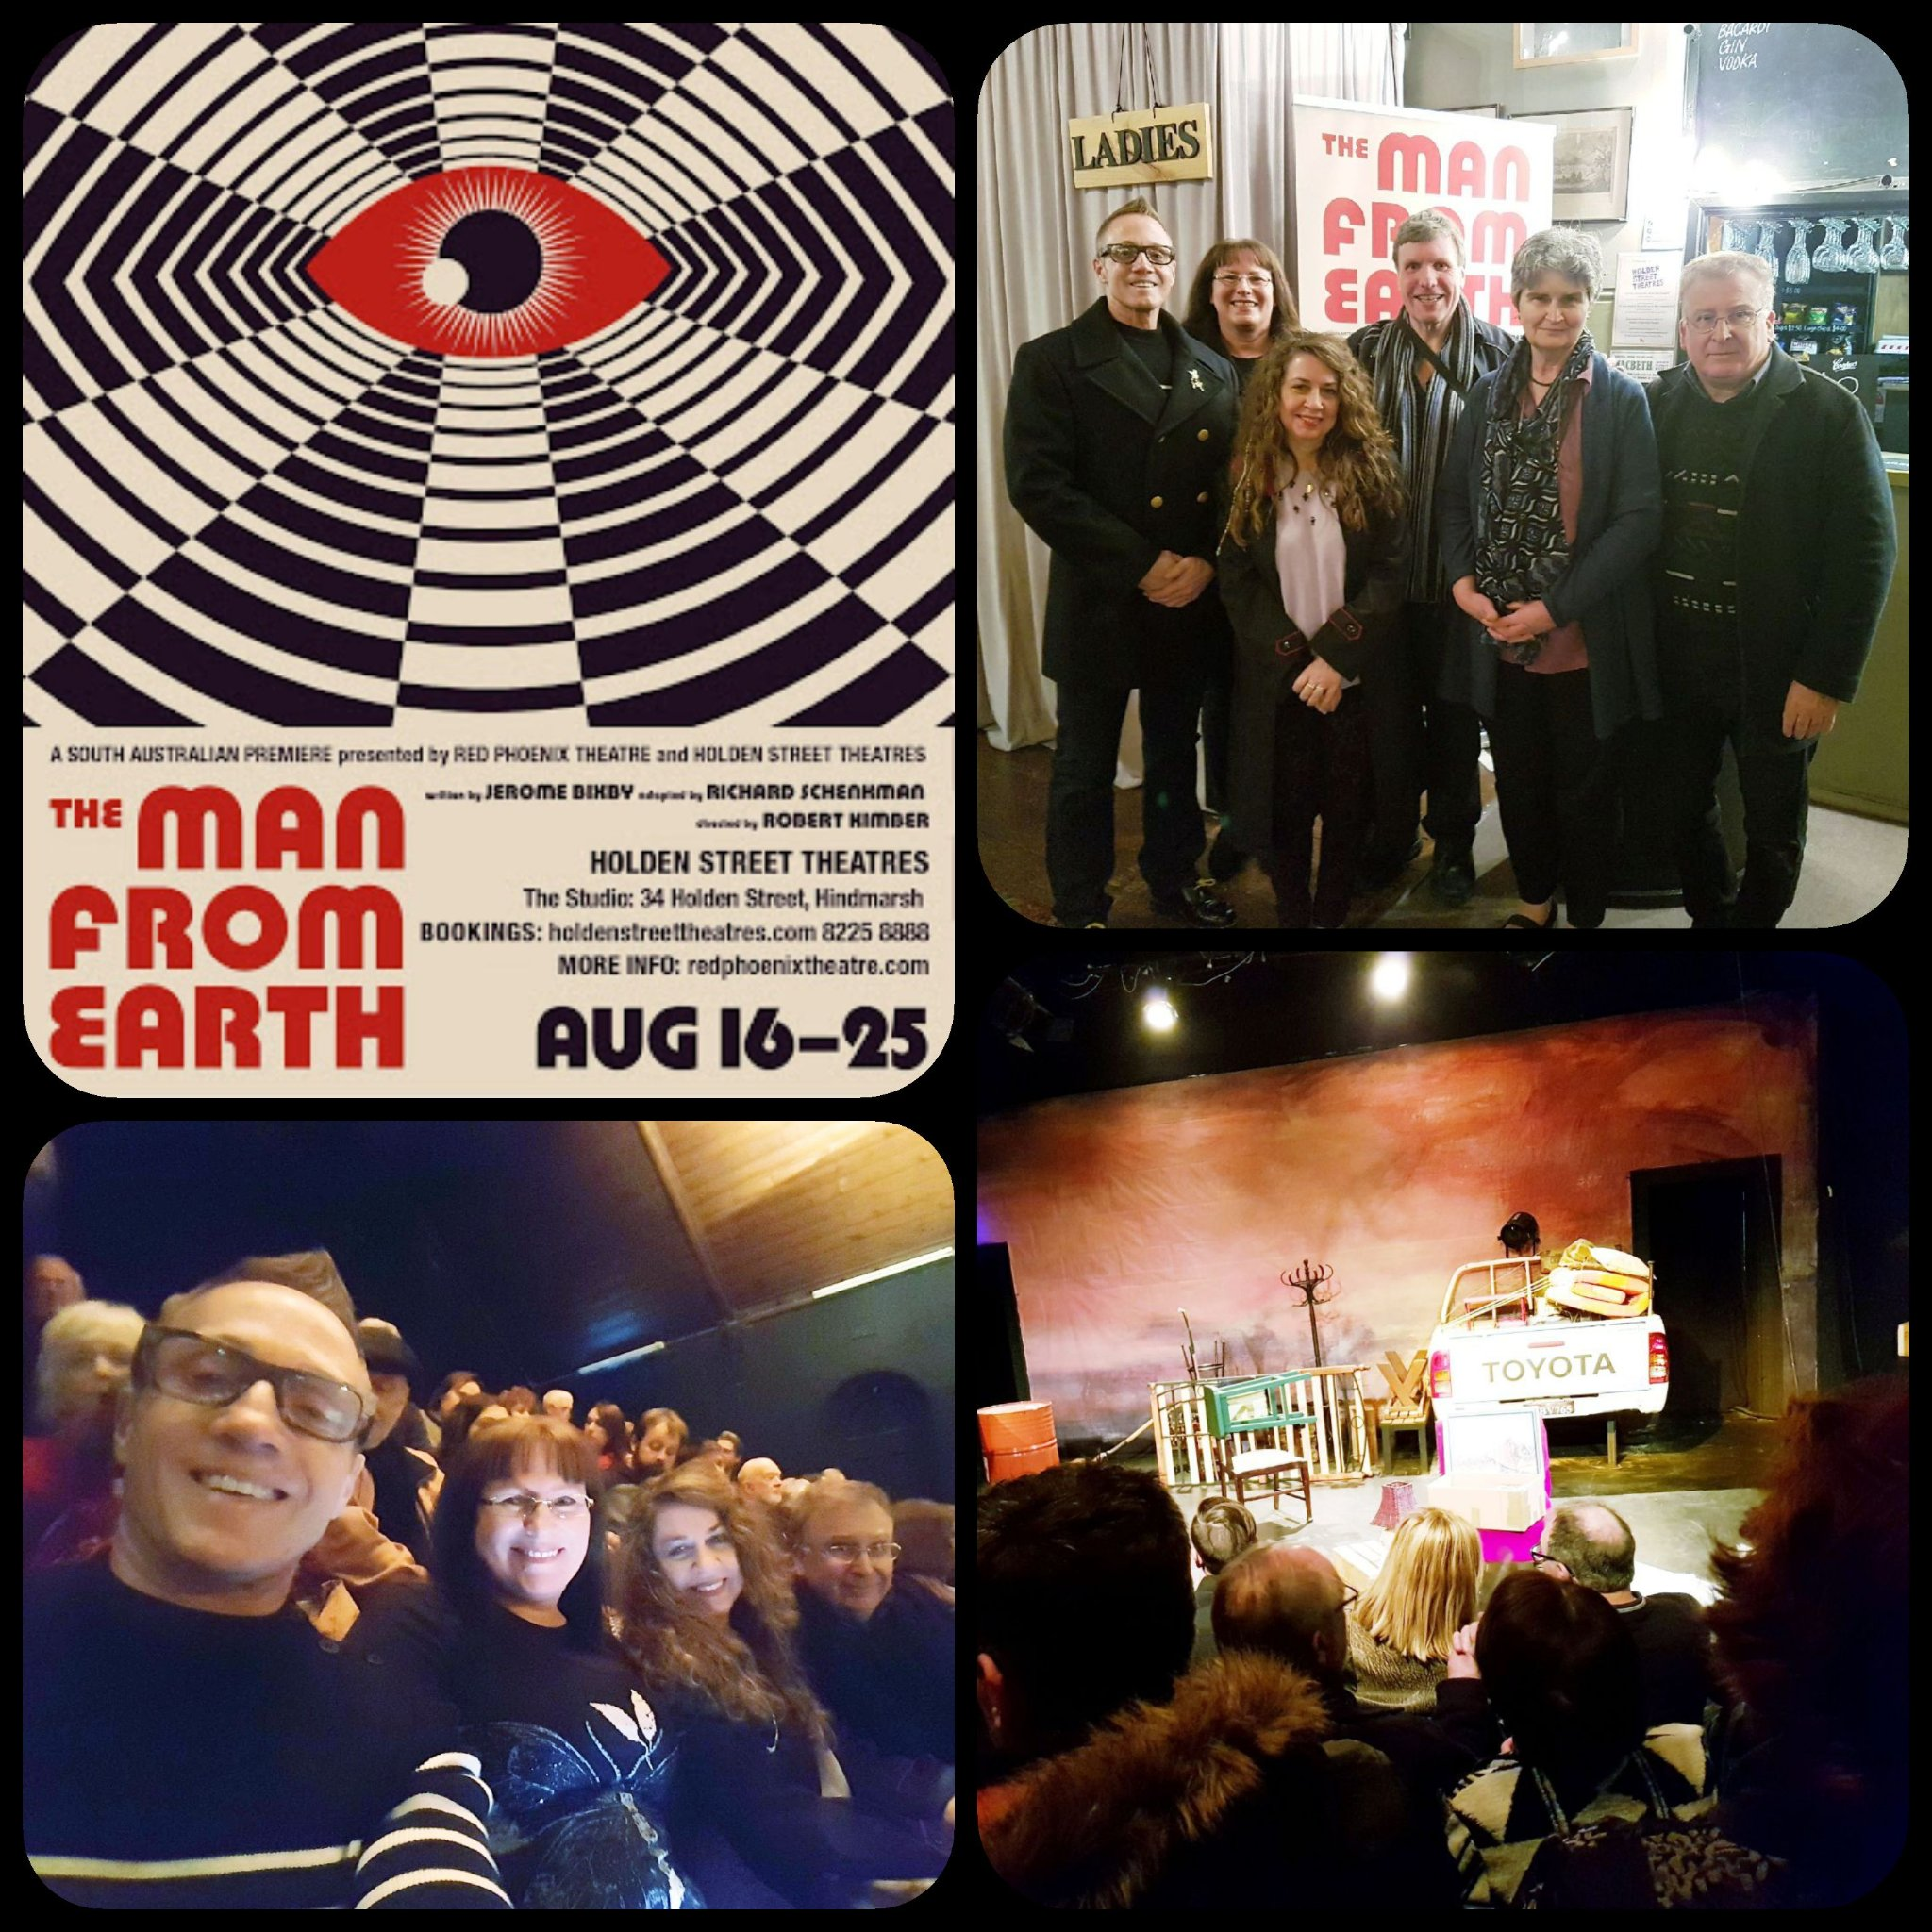 We had a fantastic evening at the opening night of the classic sci fi theatre production of The Man From Earth at the Holden St Theatre on August 16.  A must see!